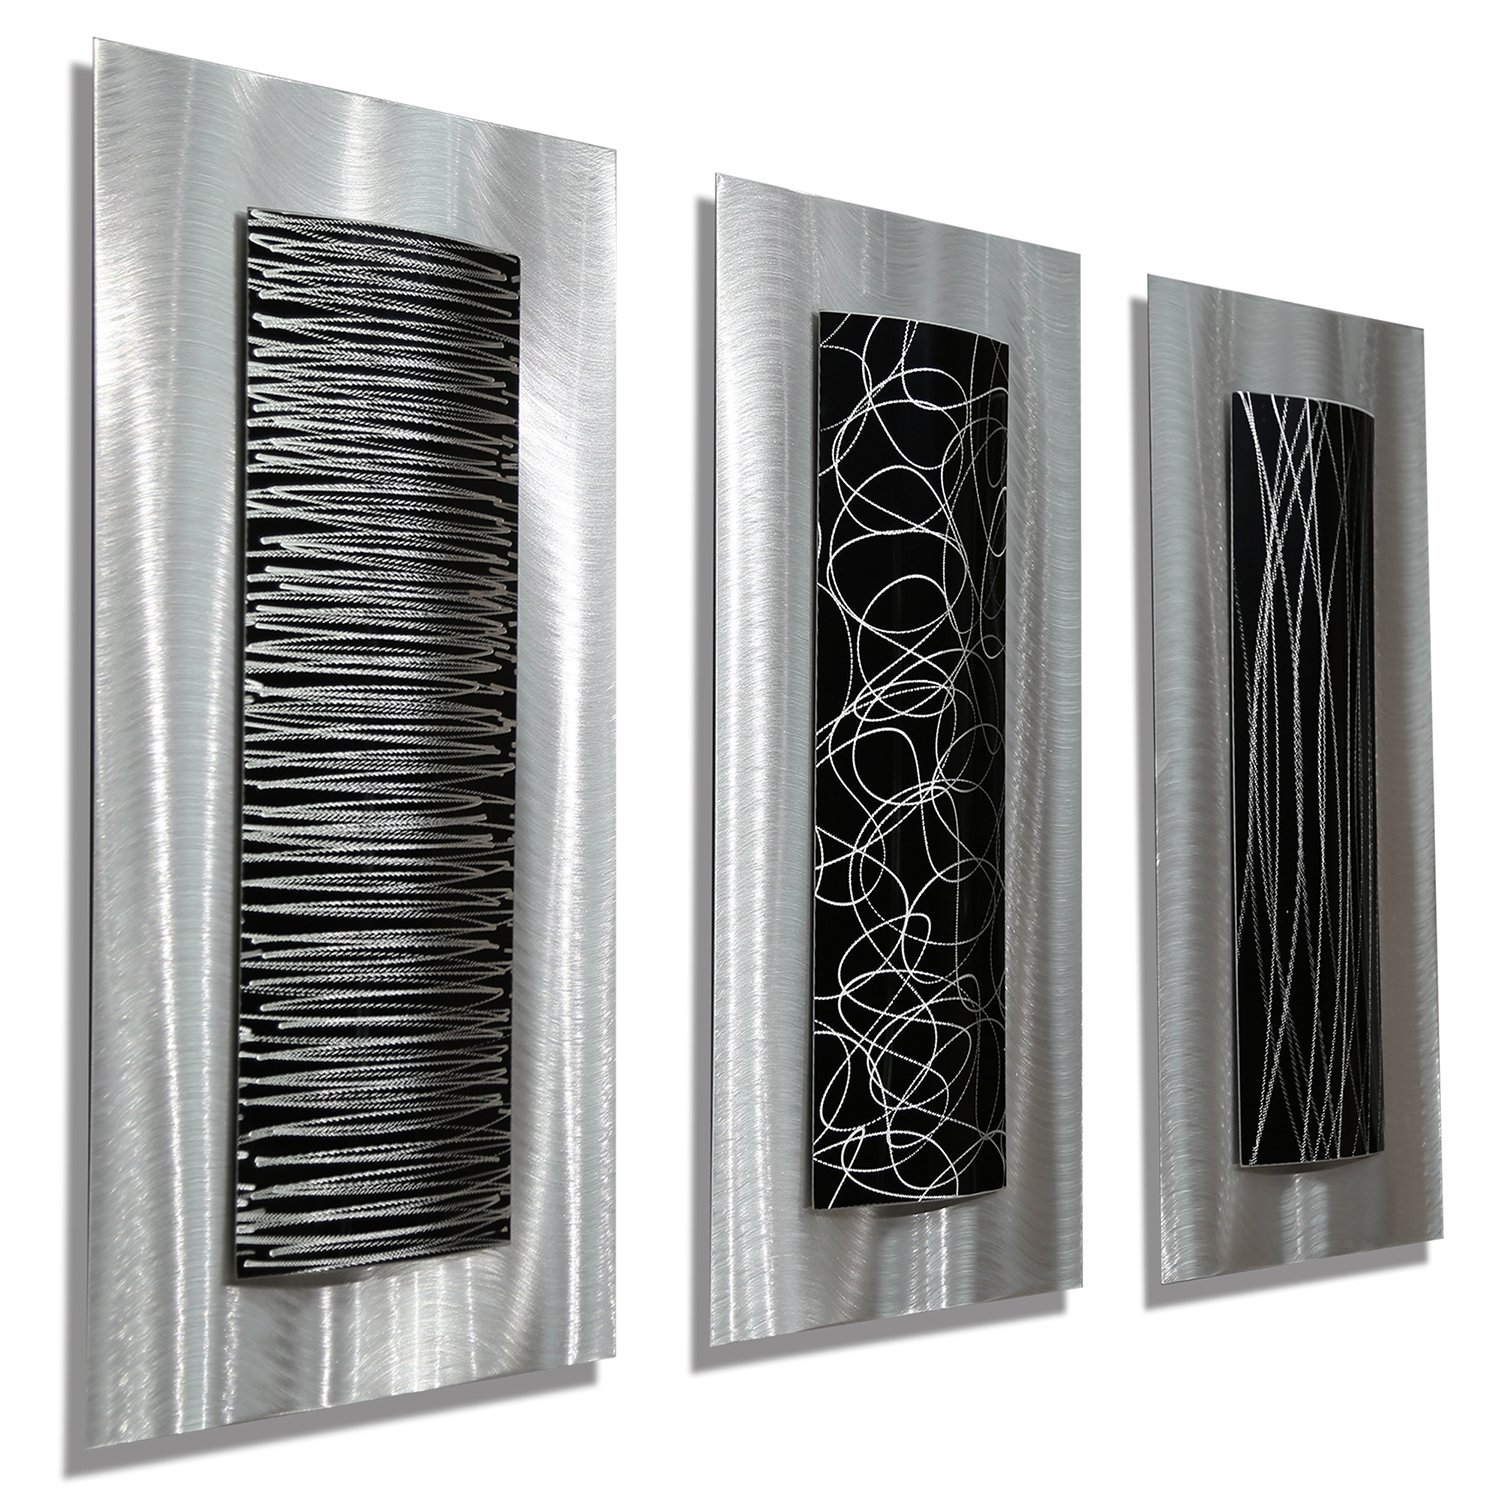 Statements2000 Contemporary Black & Silver Abstract Metal Wall Art Accent Modern Home Decor, Set of Three - Trifecta by Jon Allen